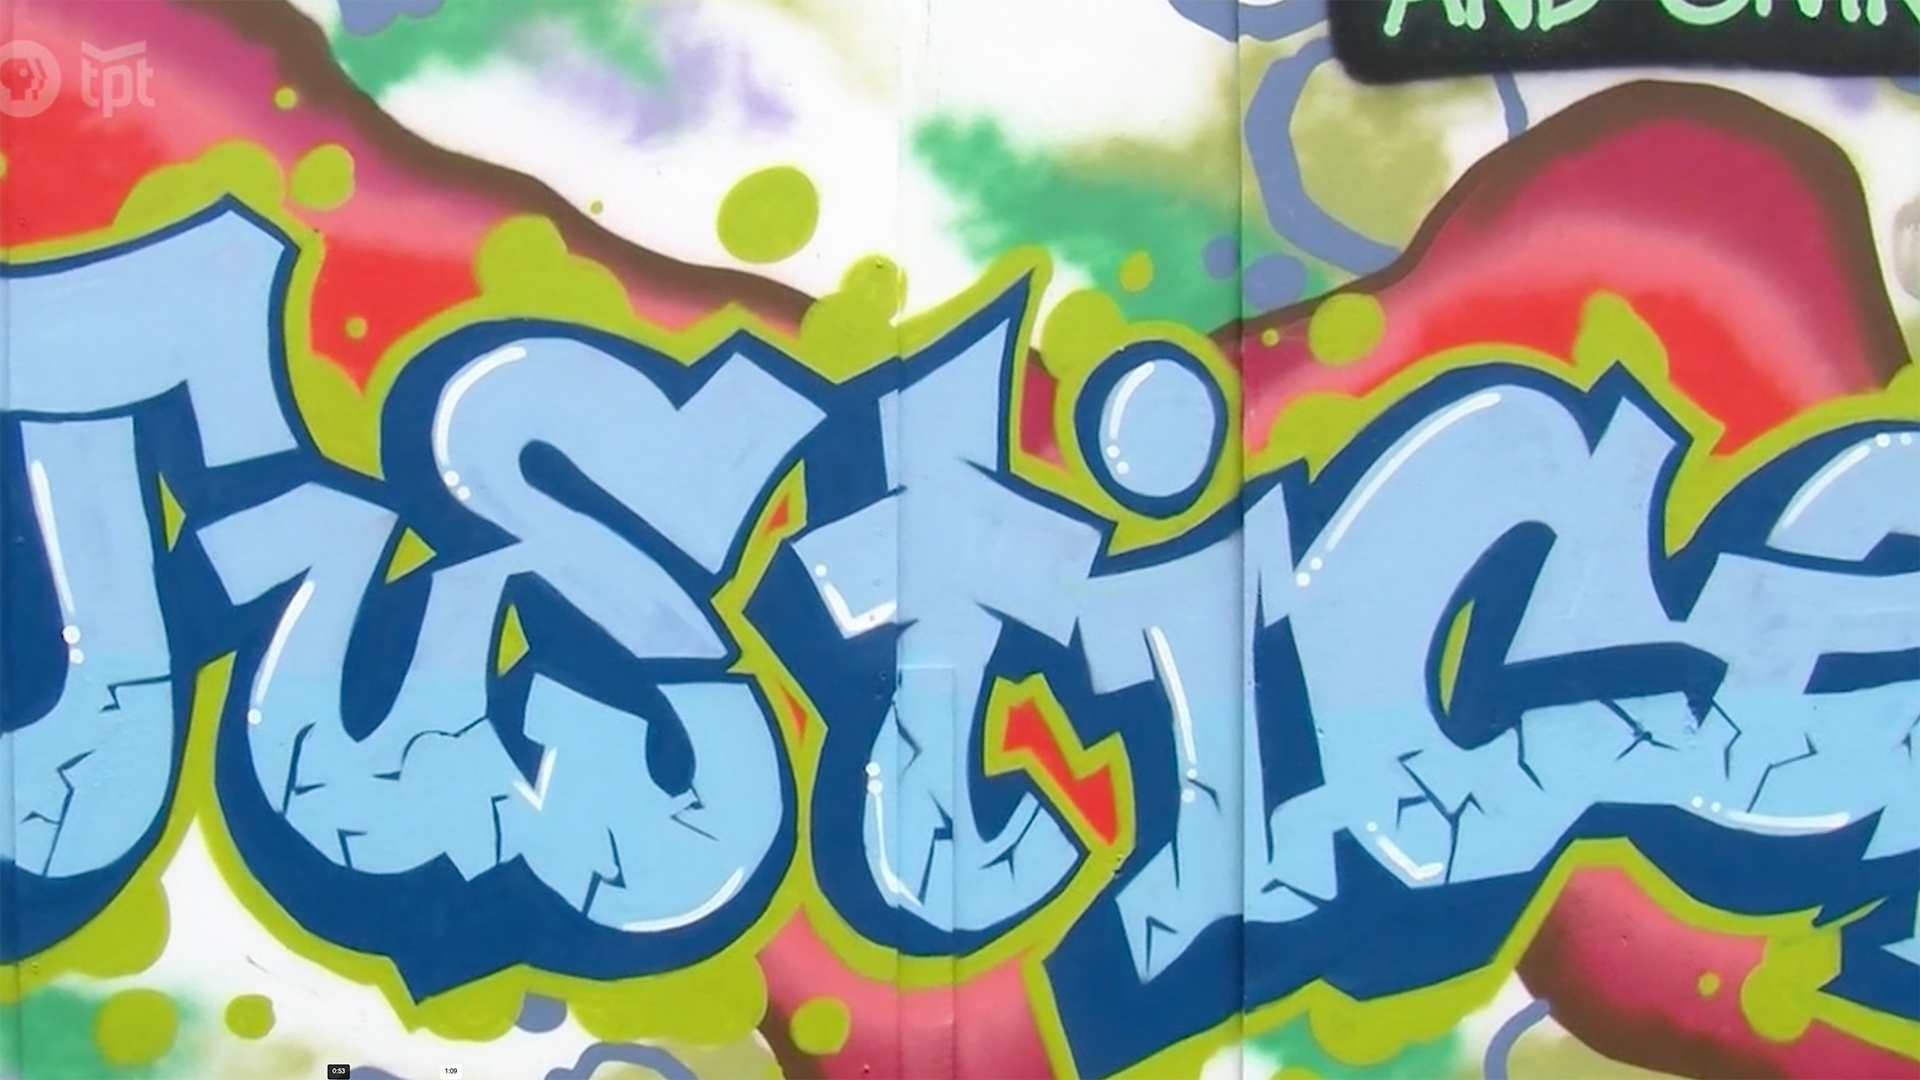 A colorful mural with the word Justice at its center